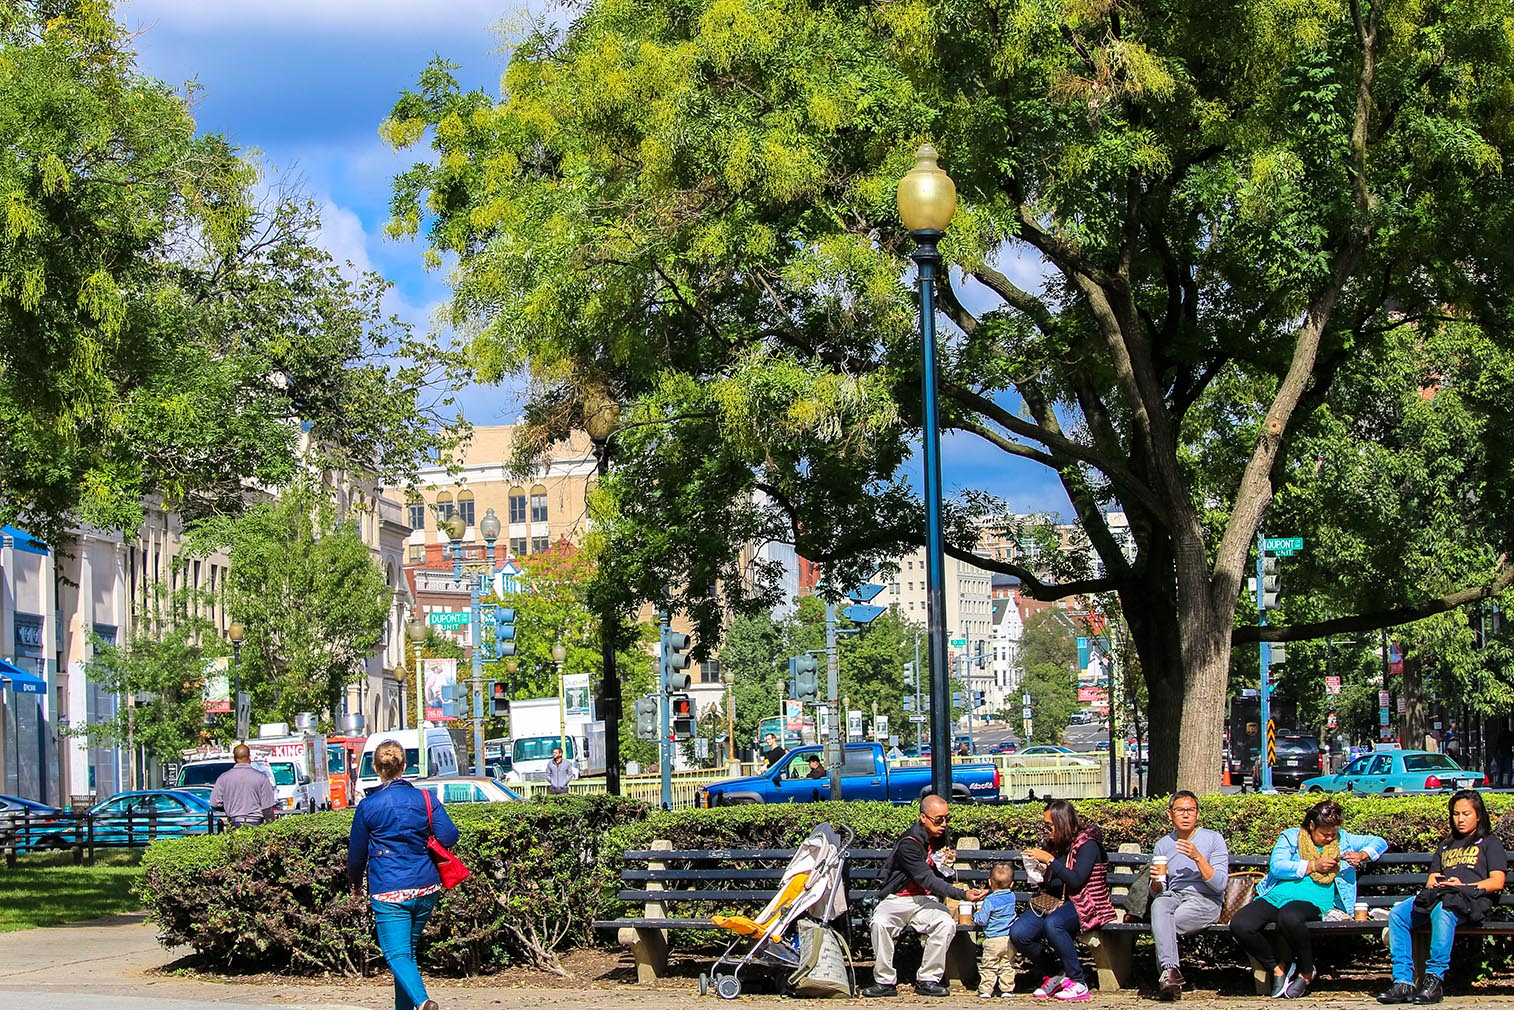 People sitting in Dupont Circle, Washington, D.C.